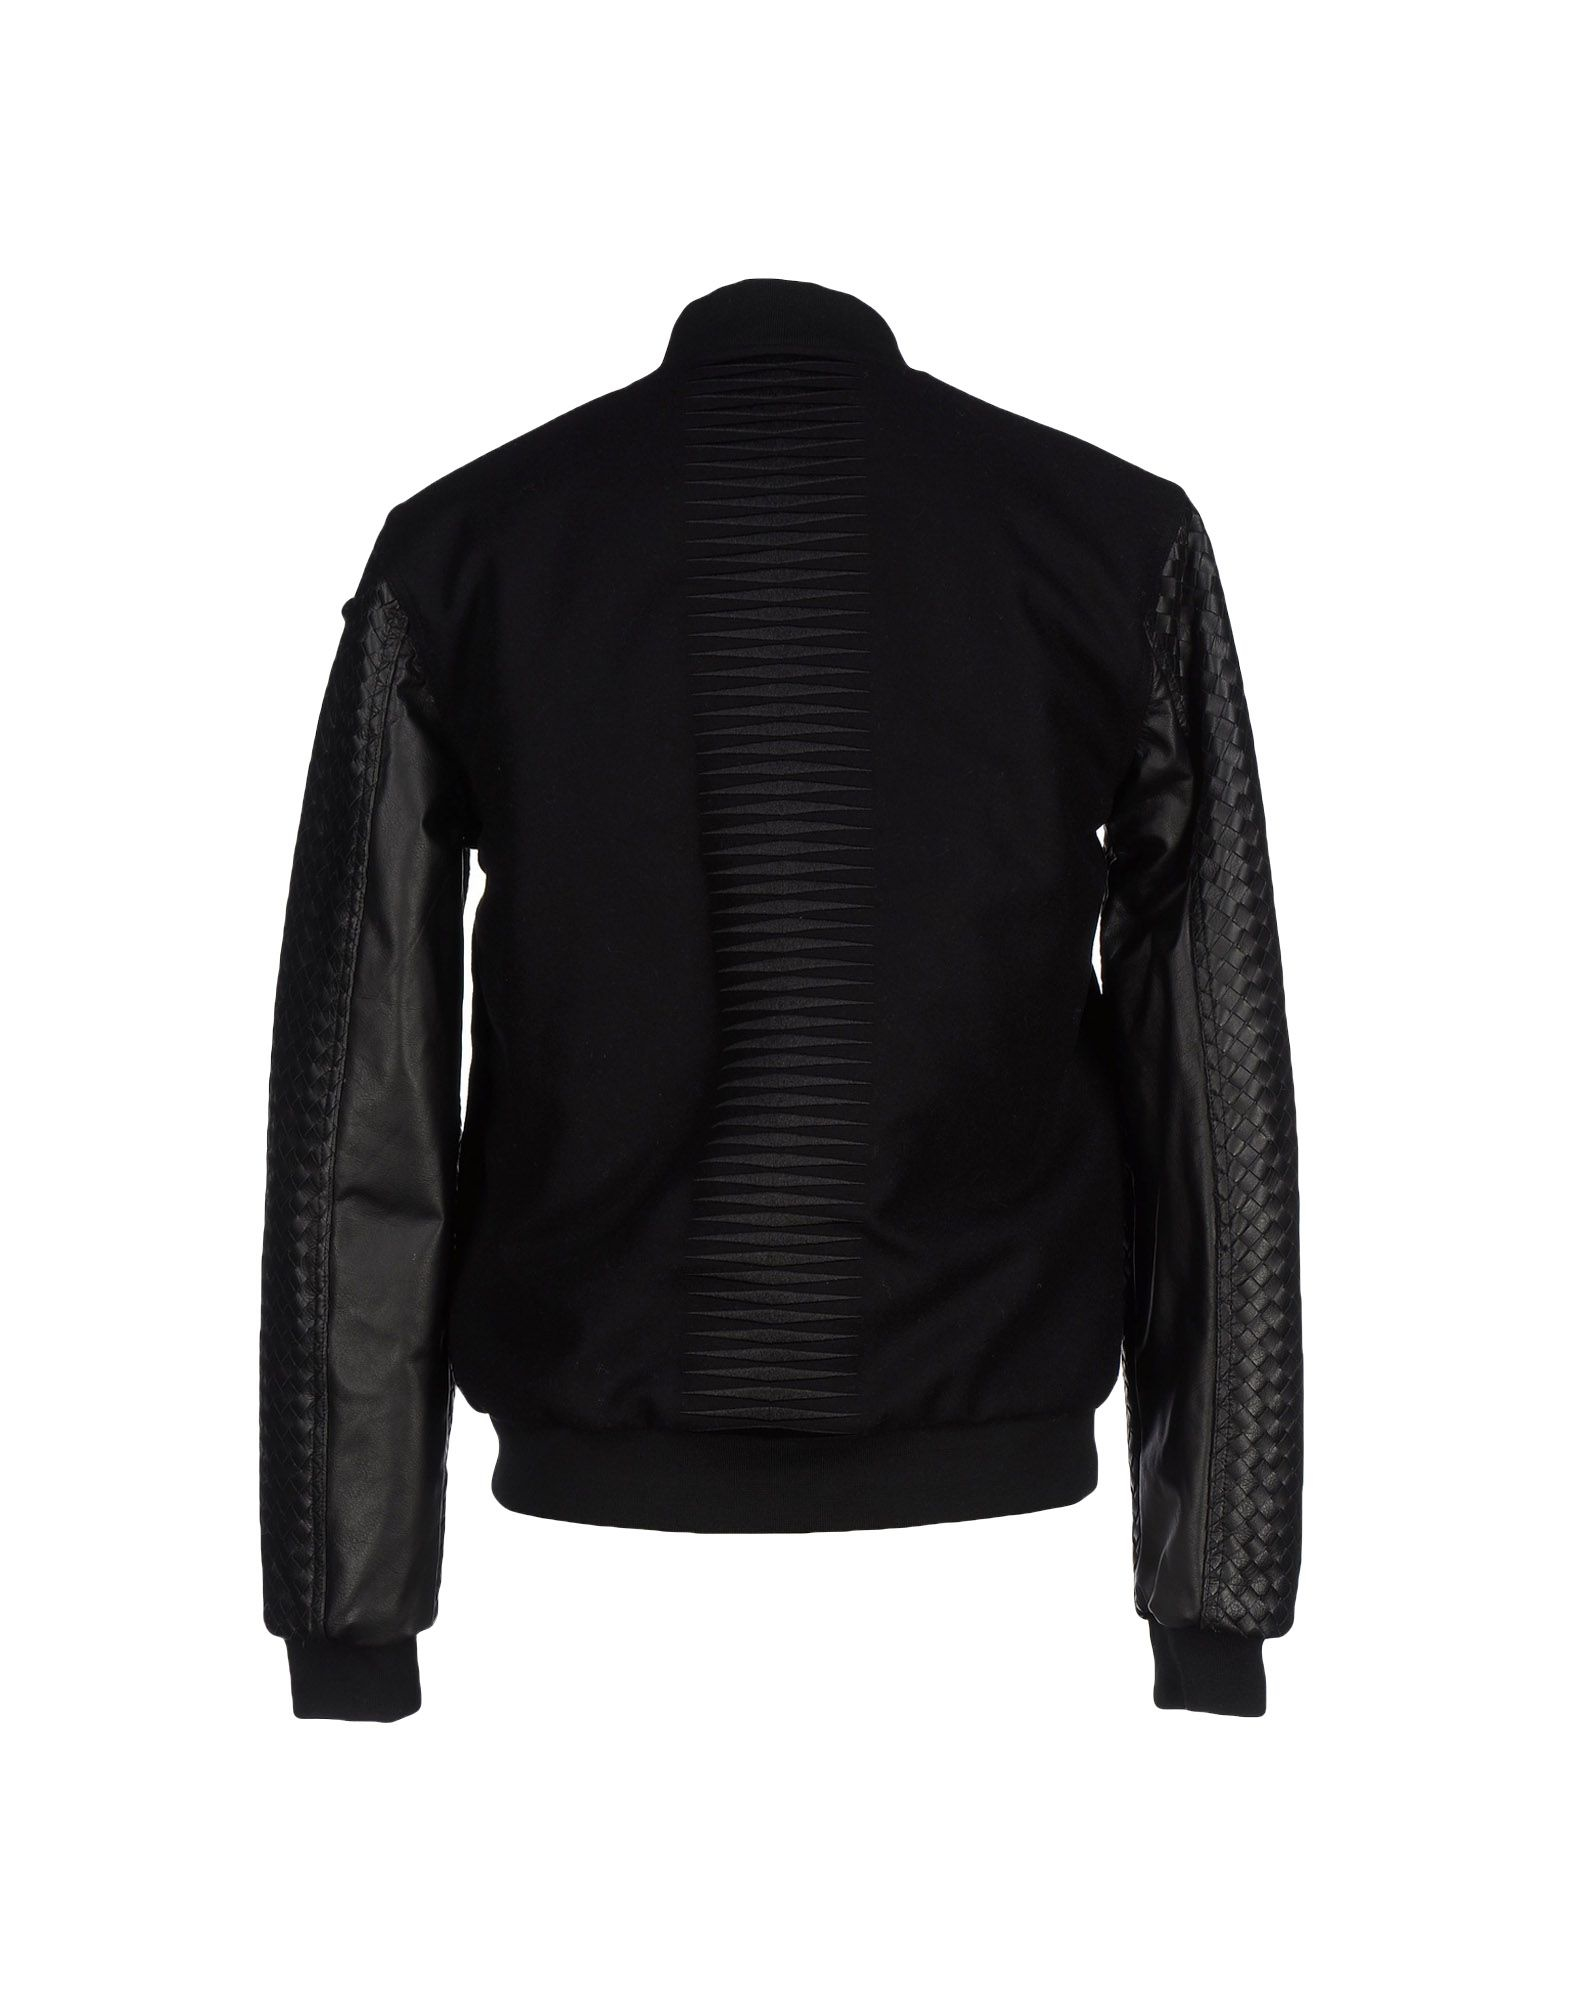 Uppercut Leather Jacket in Black for Men